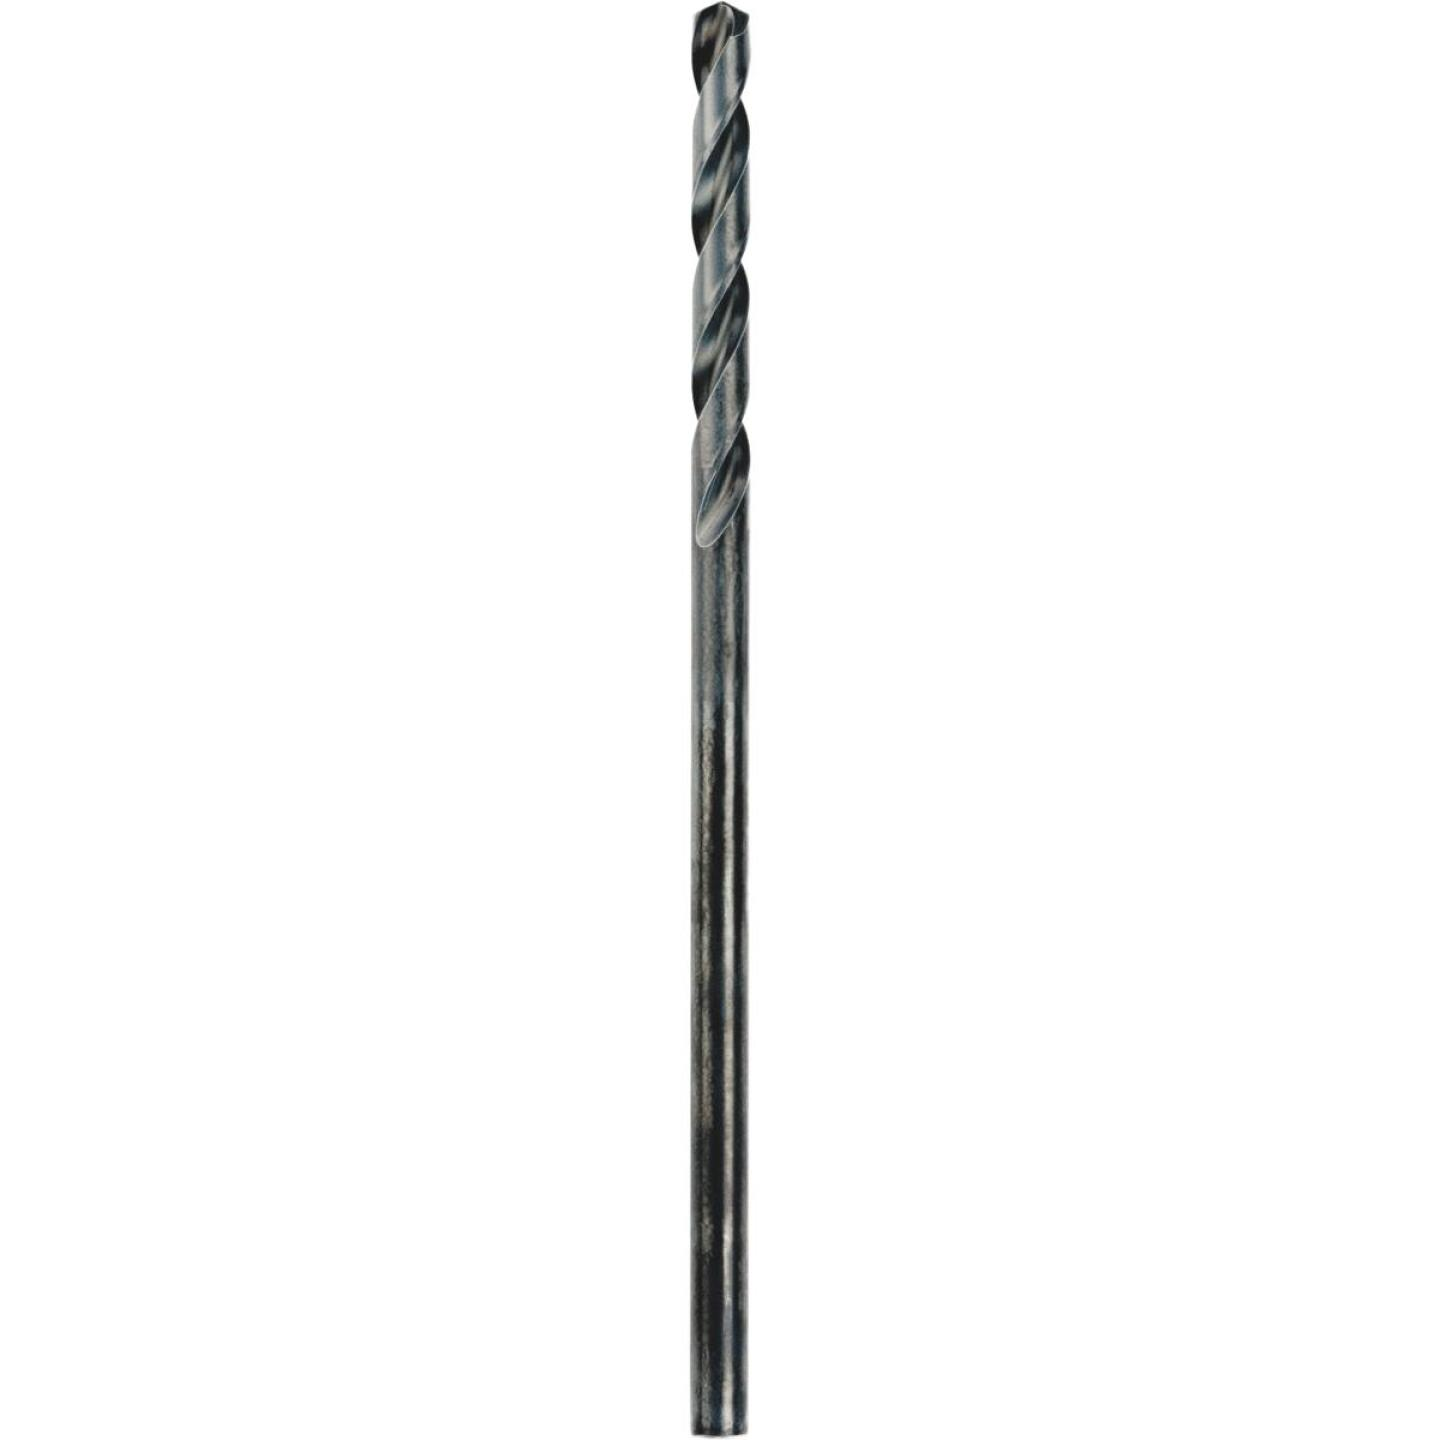 Irwin 1/2 In. x 12 In. Black Oxide Extended Length Drill Bit Image 1